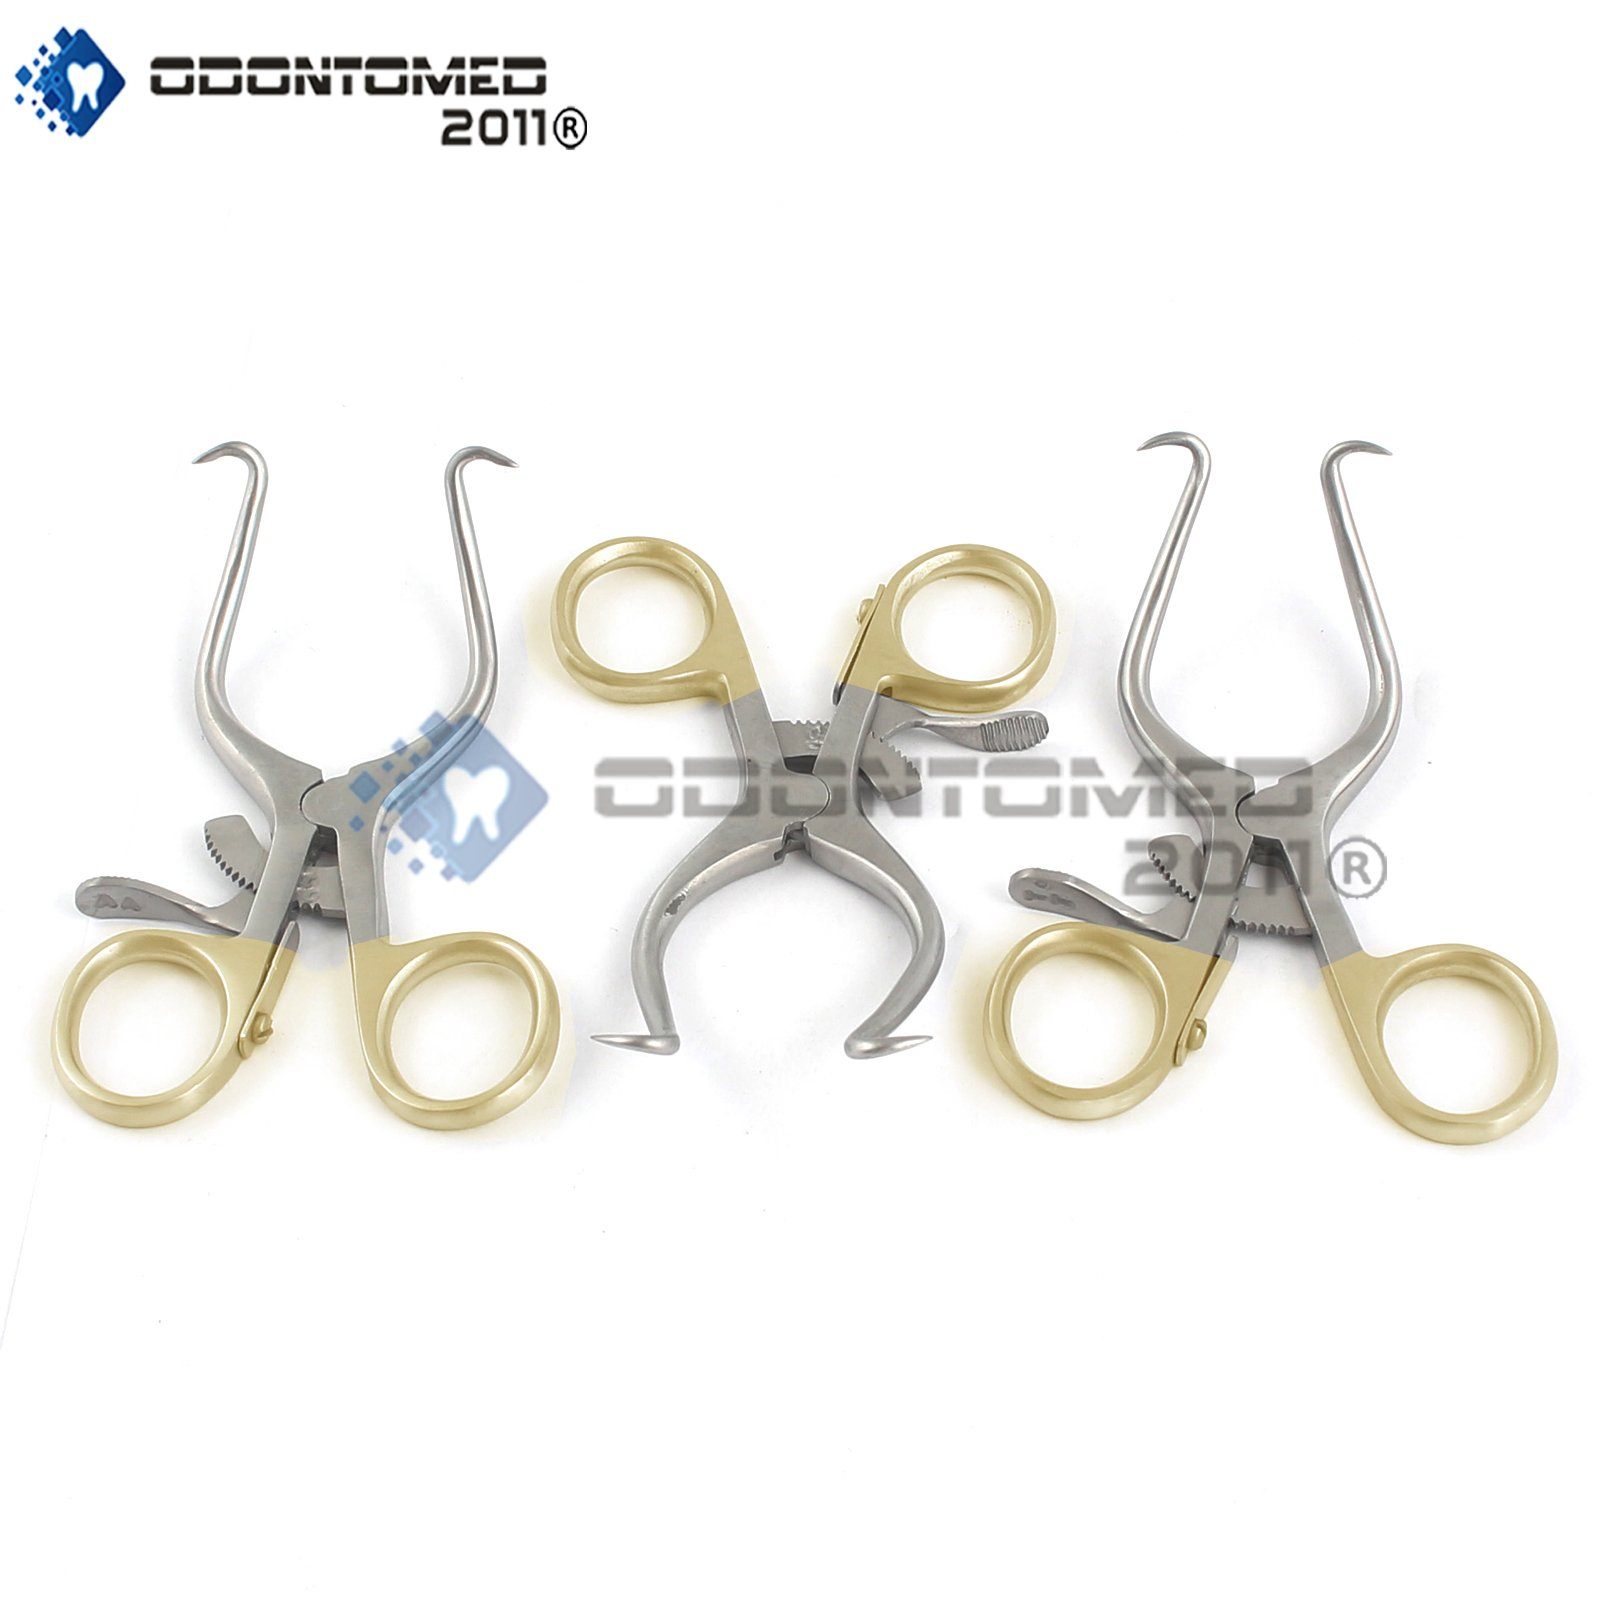 OdontoMed2011 NEW SET OF 3 O.R GRADE GELPI RETRACTOR 3.5'' WITH GOLD HANDLE ODM